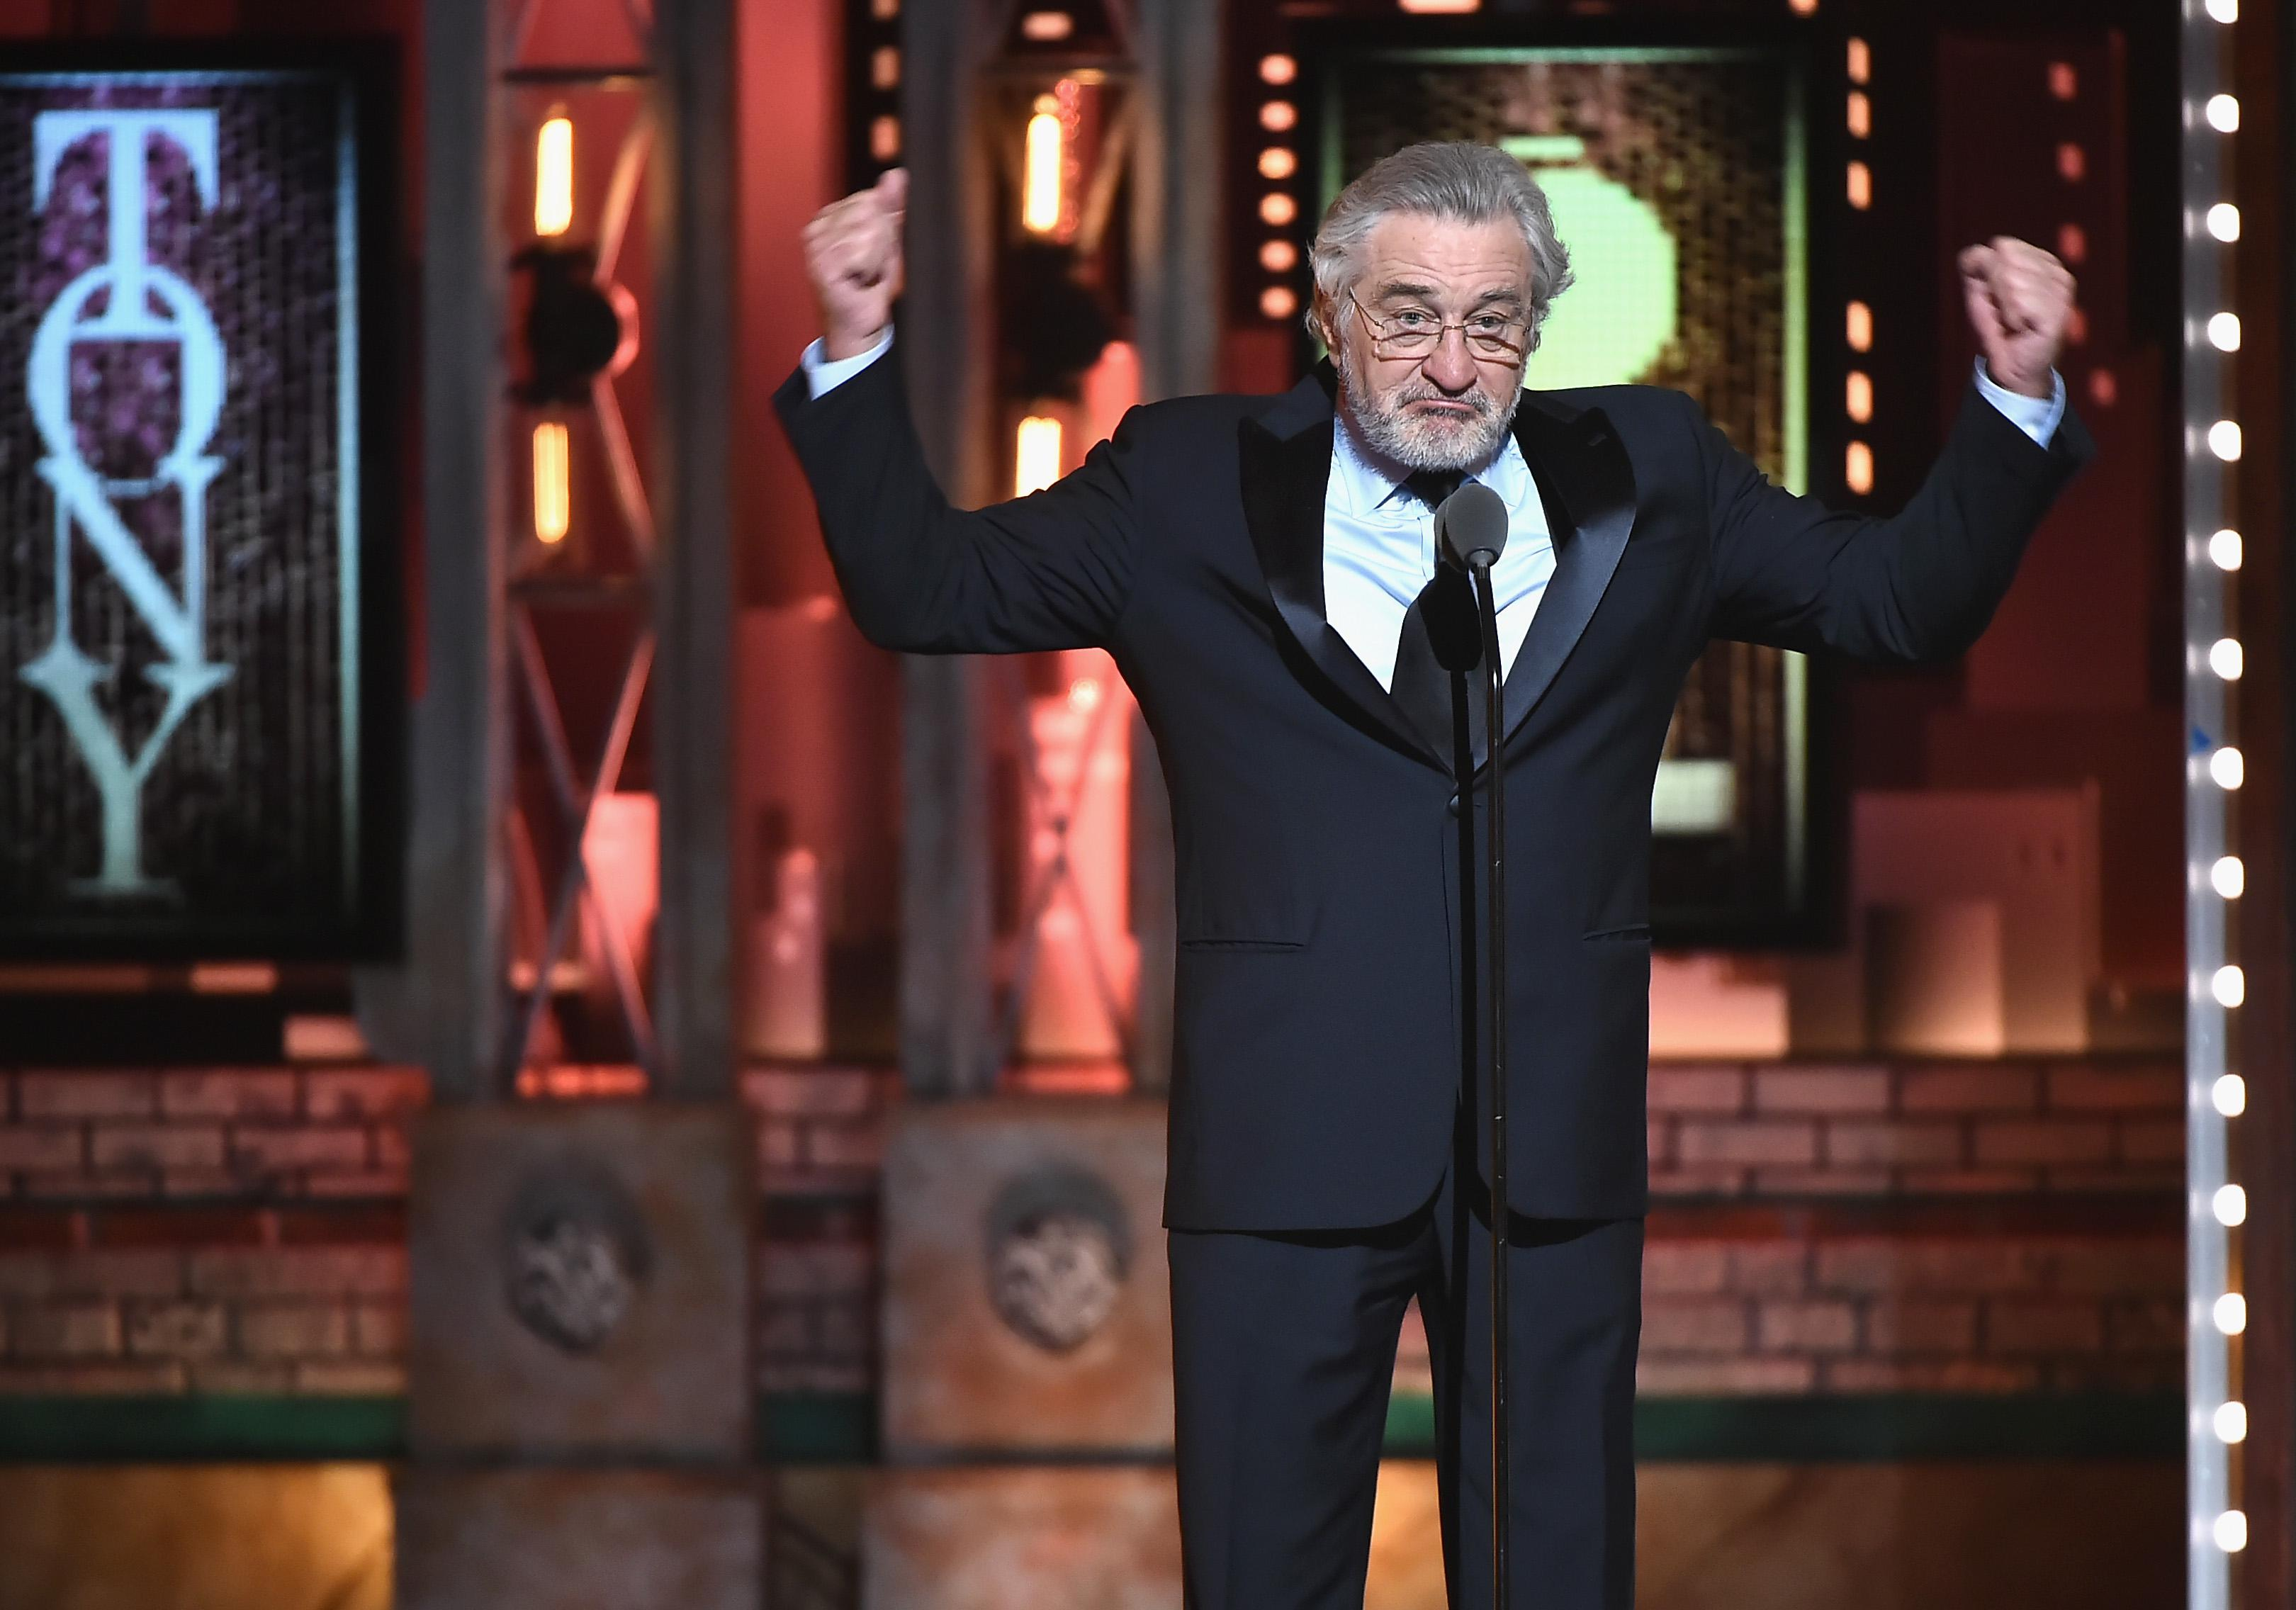 Robert De Niro, winning the Tony Awards.